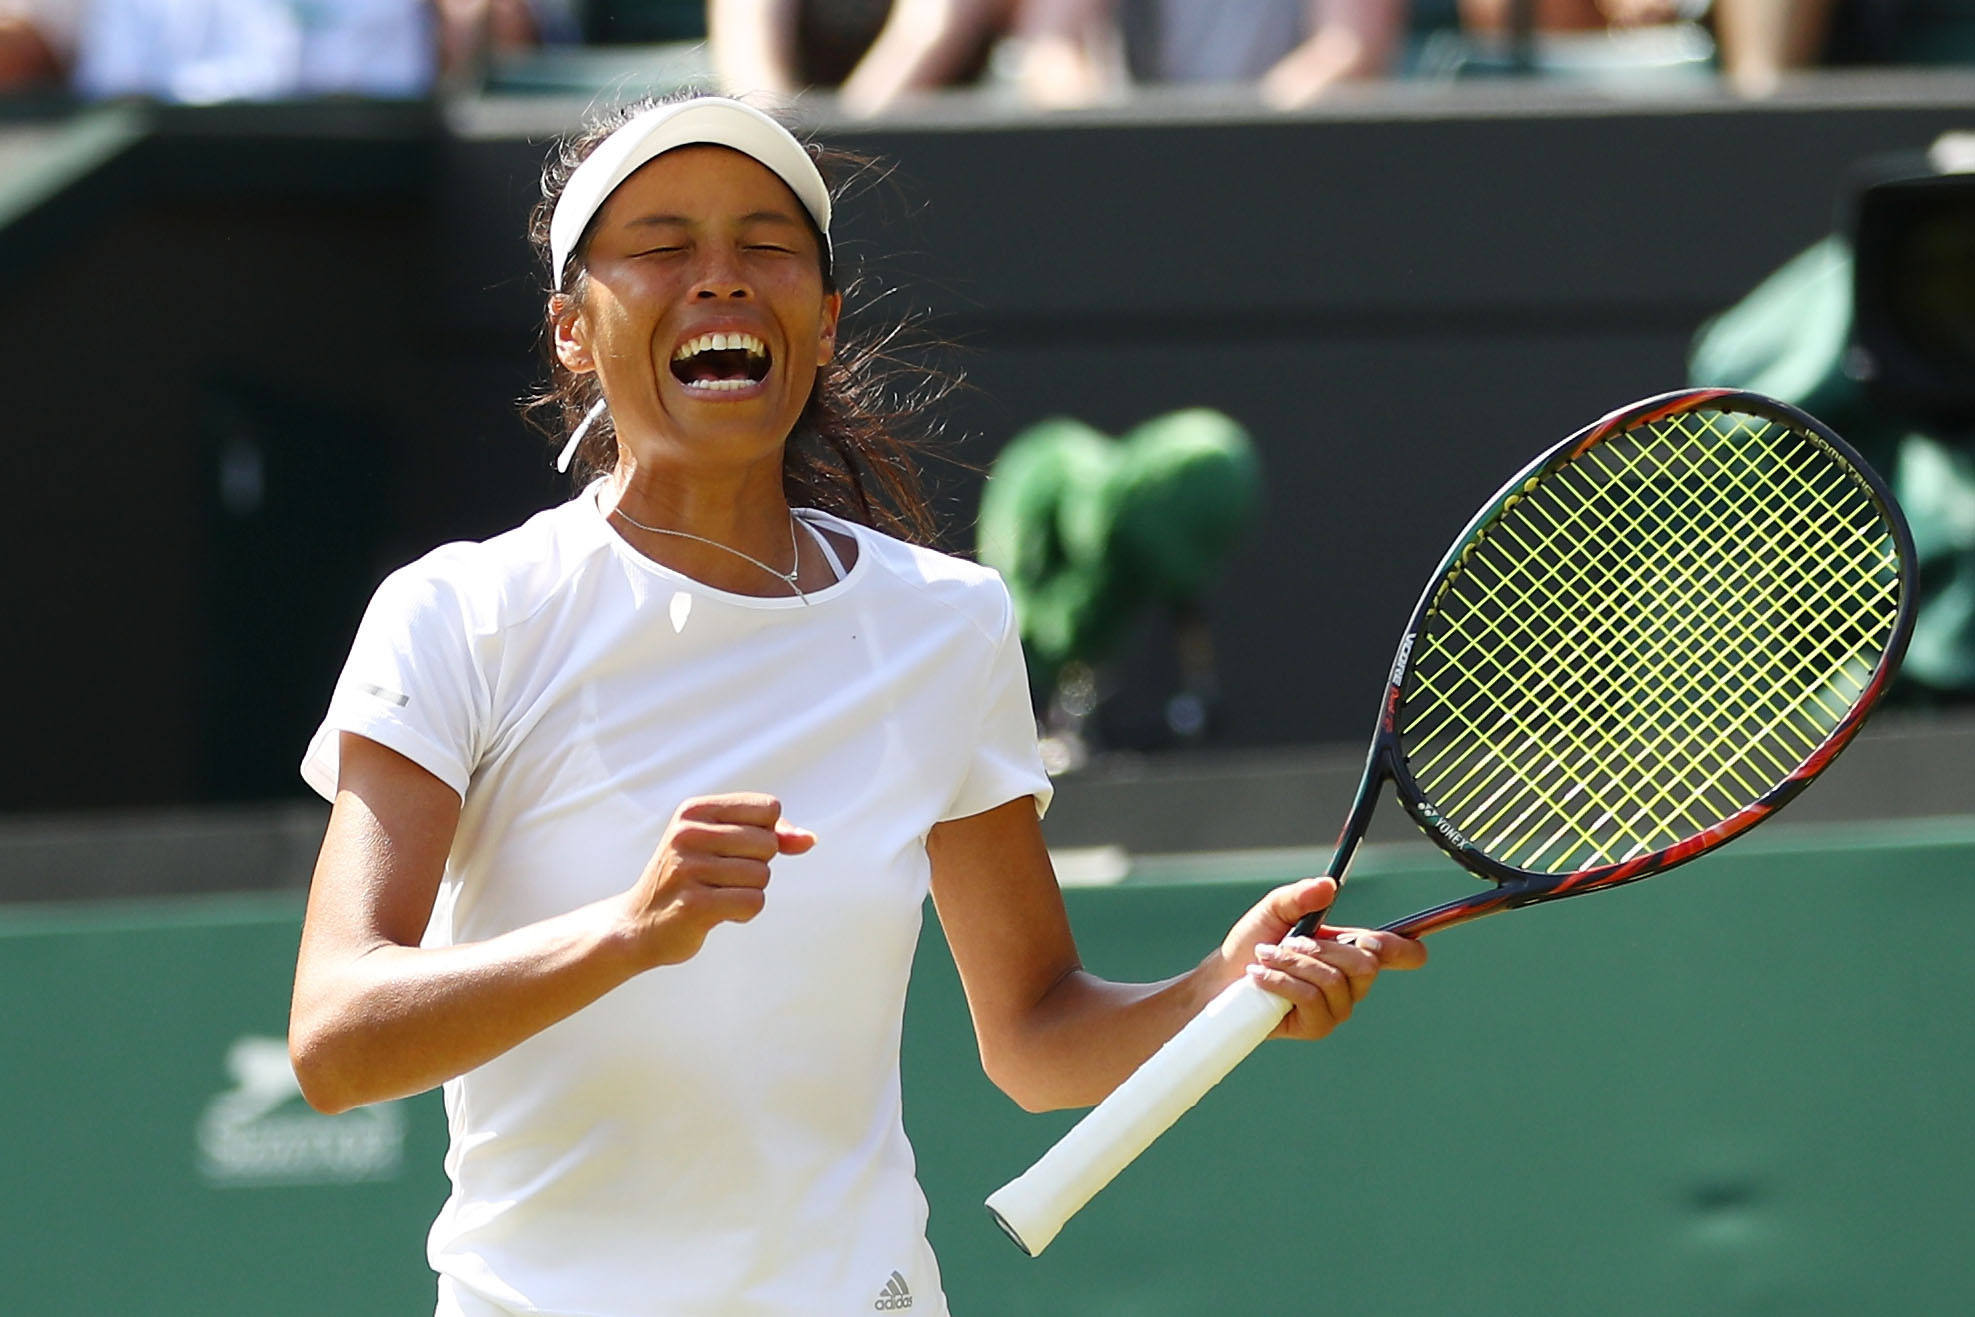 Taiwan's Hsieh Su-wei stunned Romania's Simona Halep to knock the women's number one seed out of Wimbledon ©Getty Images